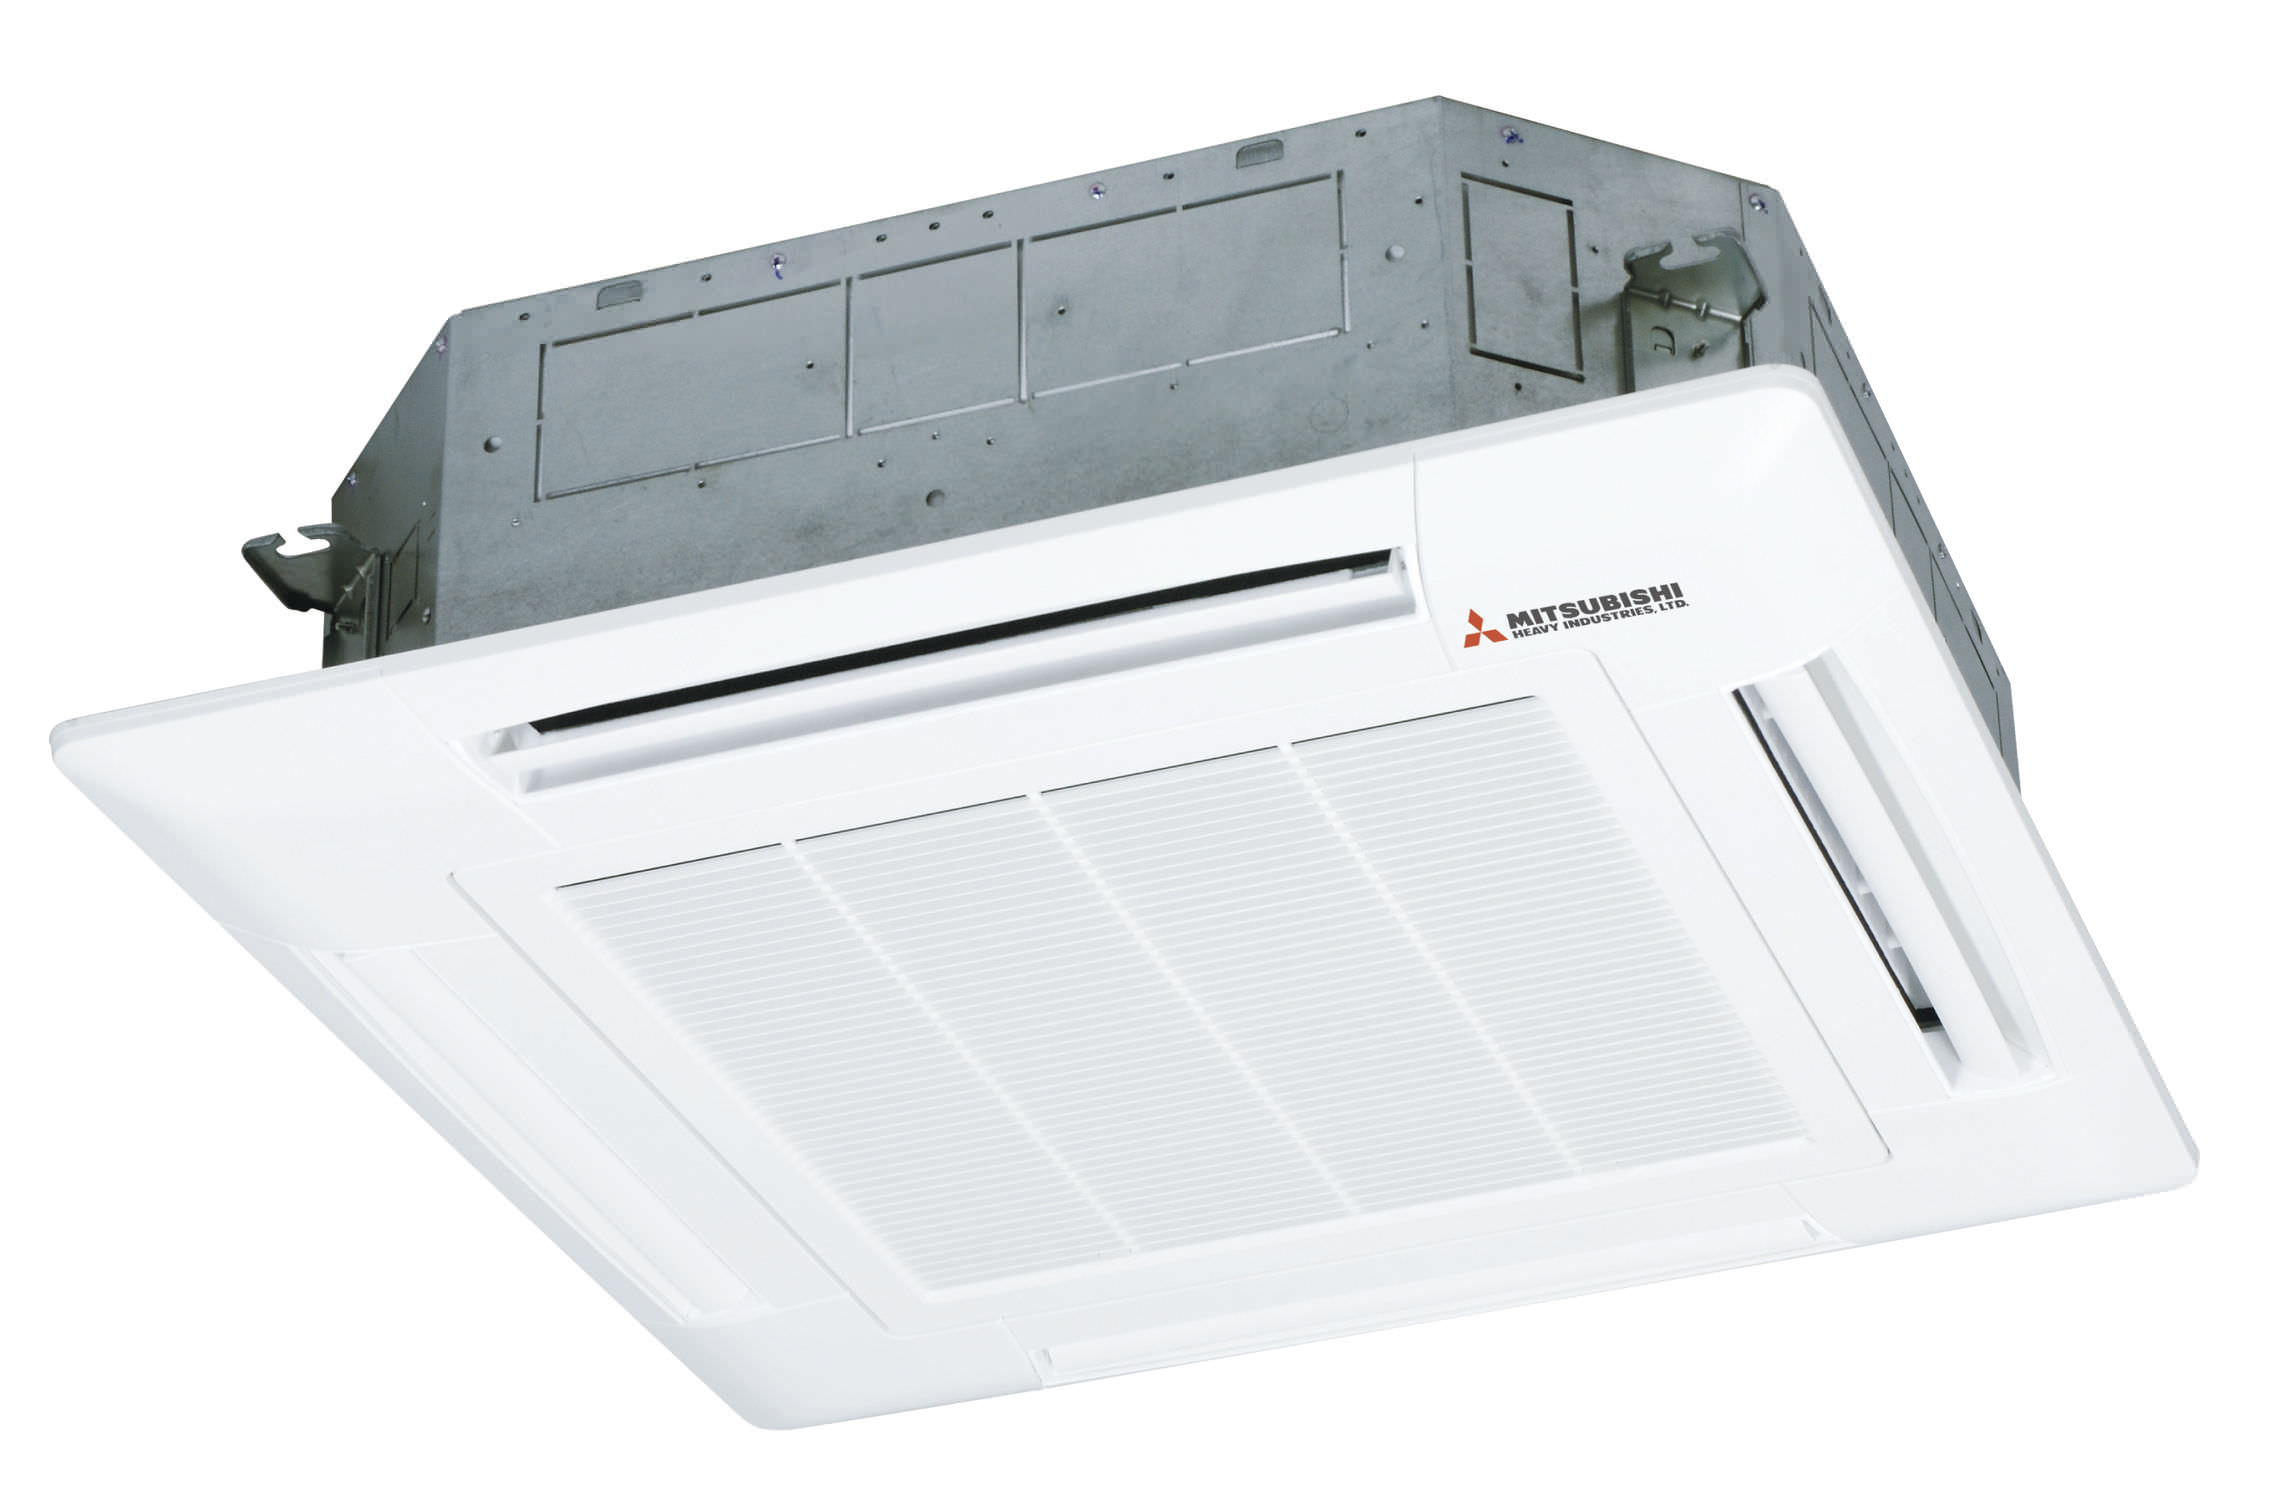 split system air conditioning unit - fdt200vstvf1 - mhiae